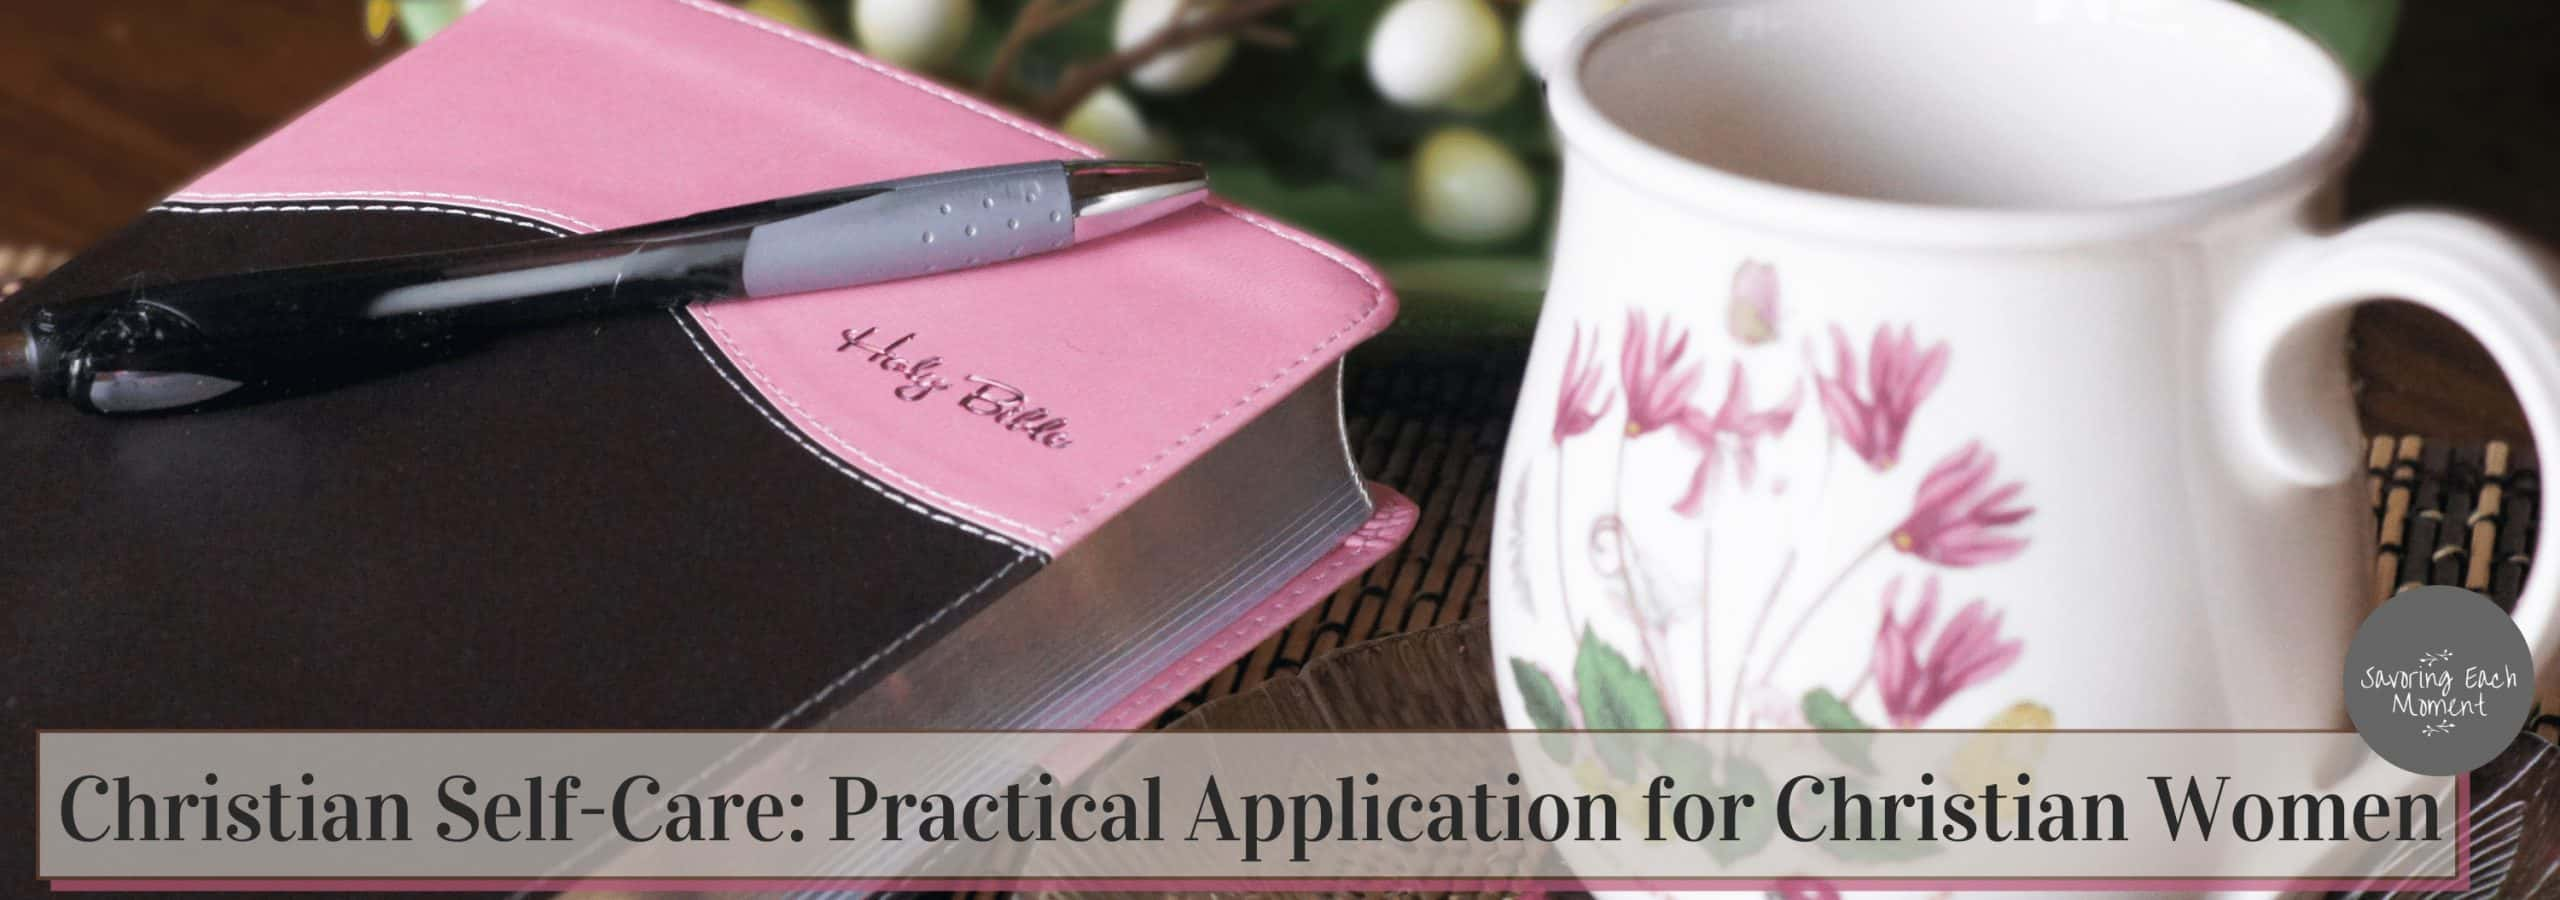 Christian Self-Care: Practical Application for Christian Women